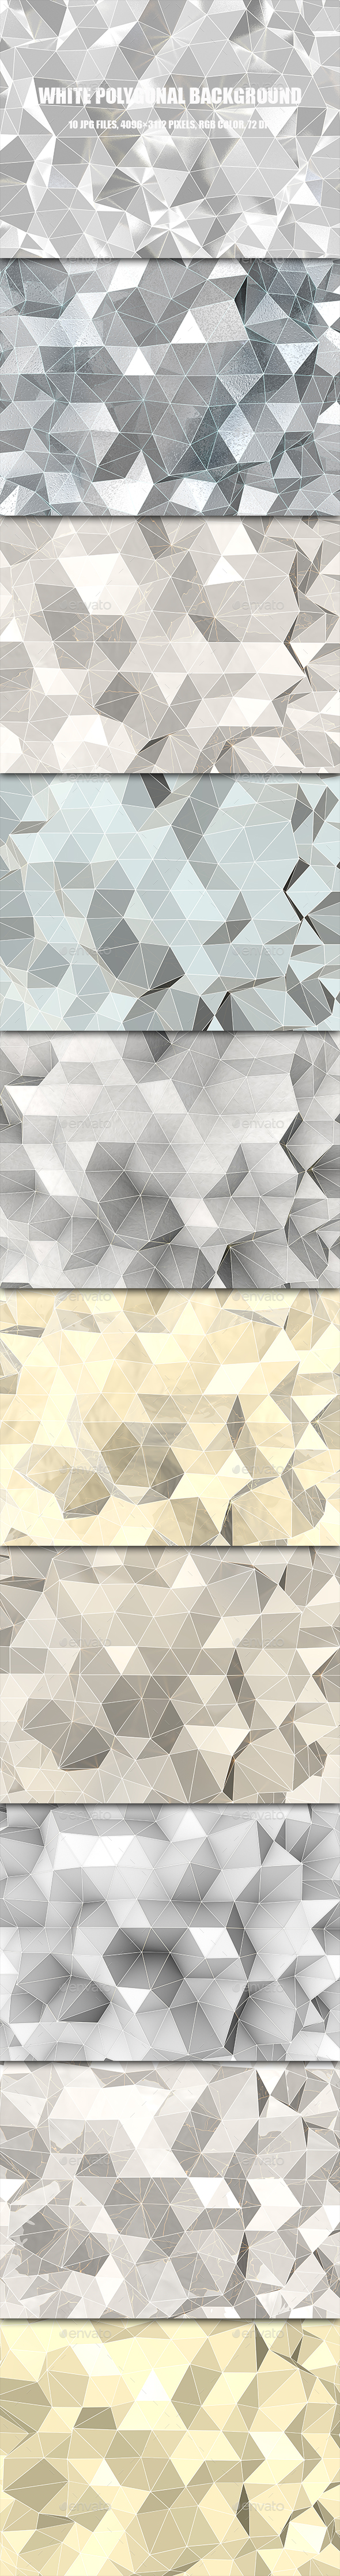 White Polygonal Background - 3D Backgrounds